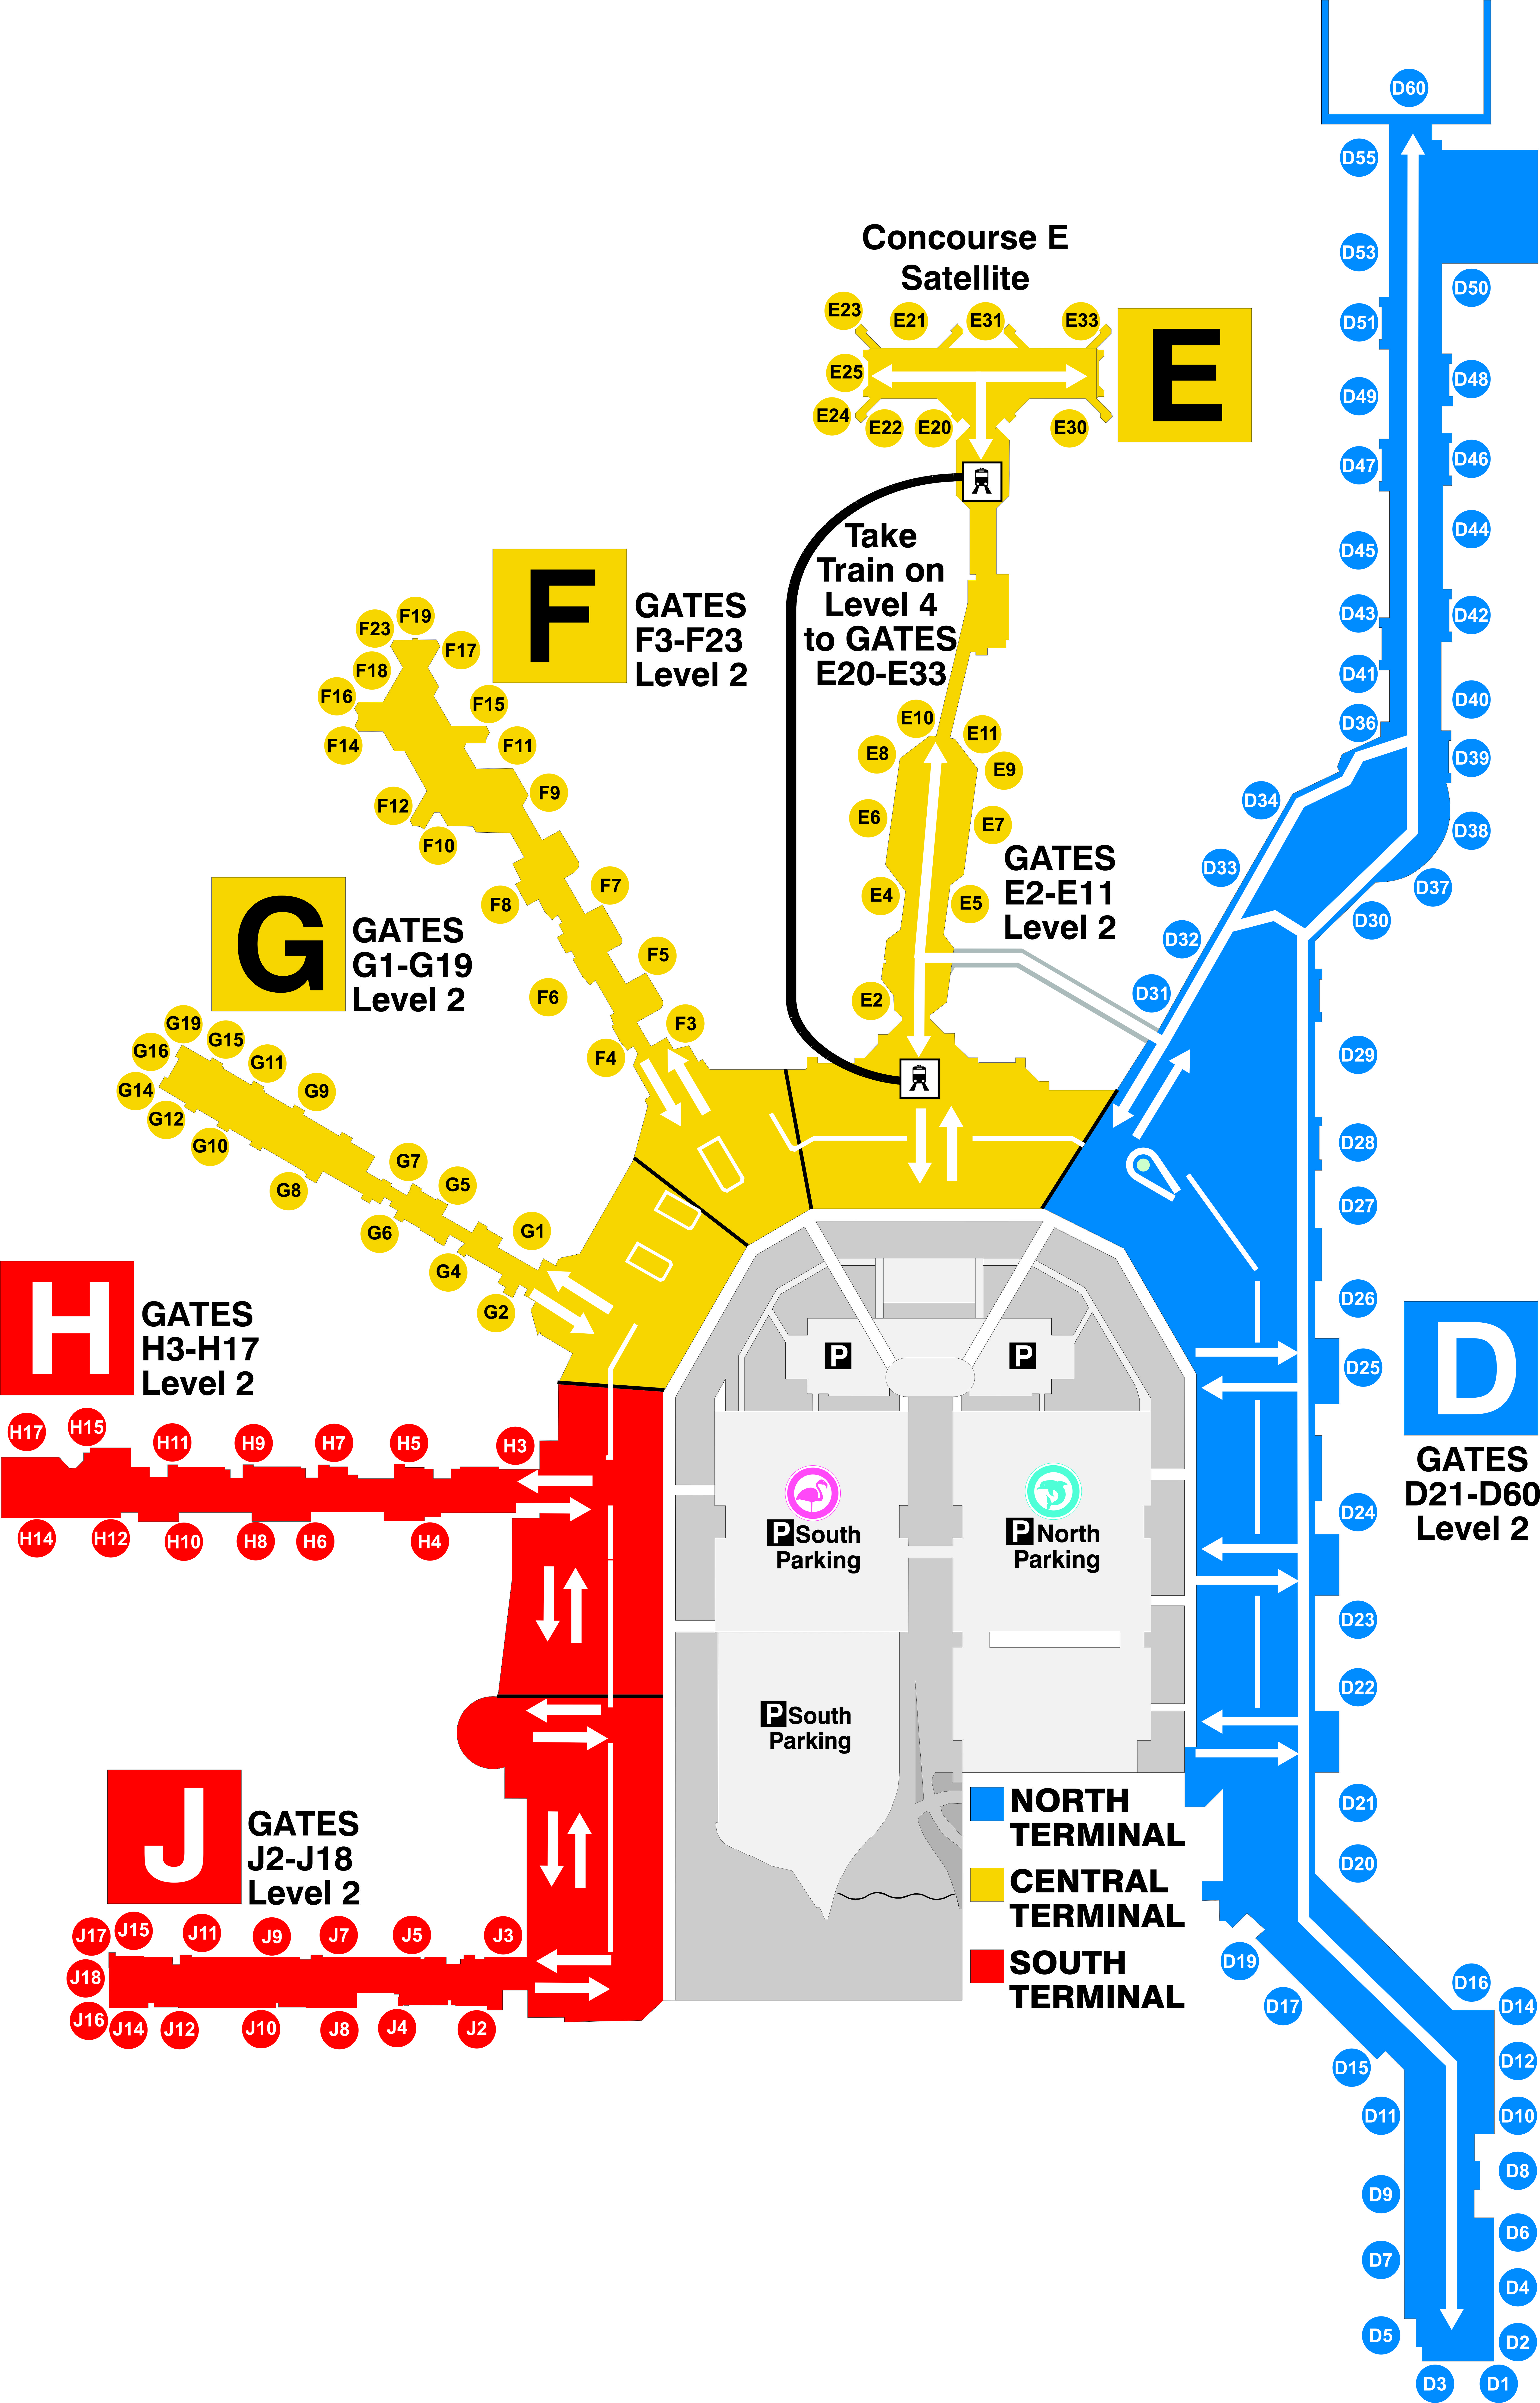 Miami international airport map mia printable terminal - Planning and design of airports pdf ...